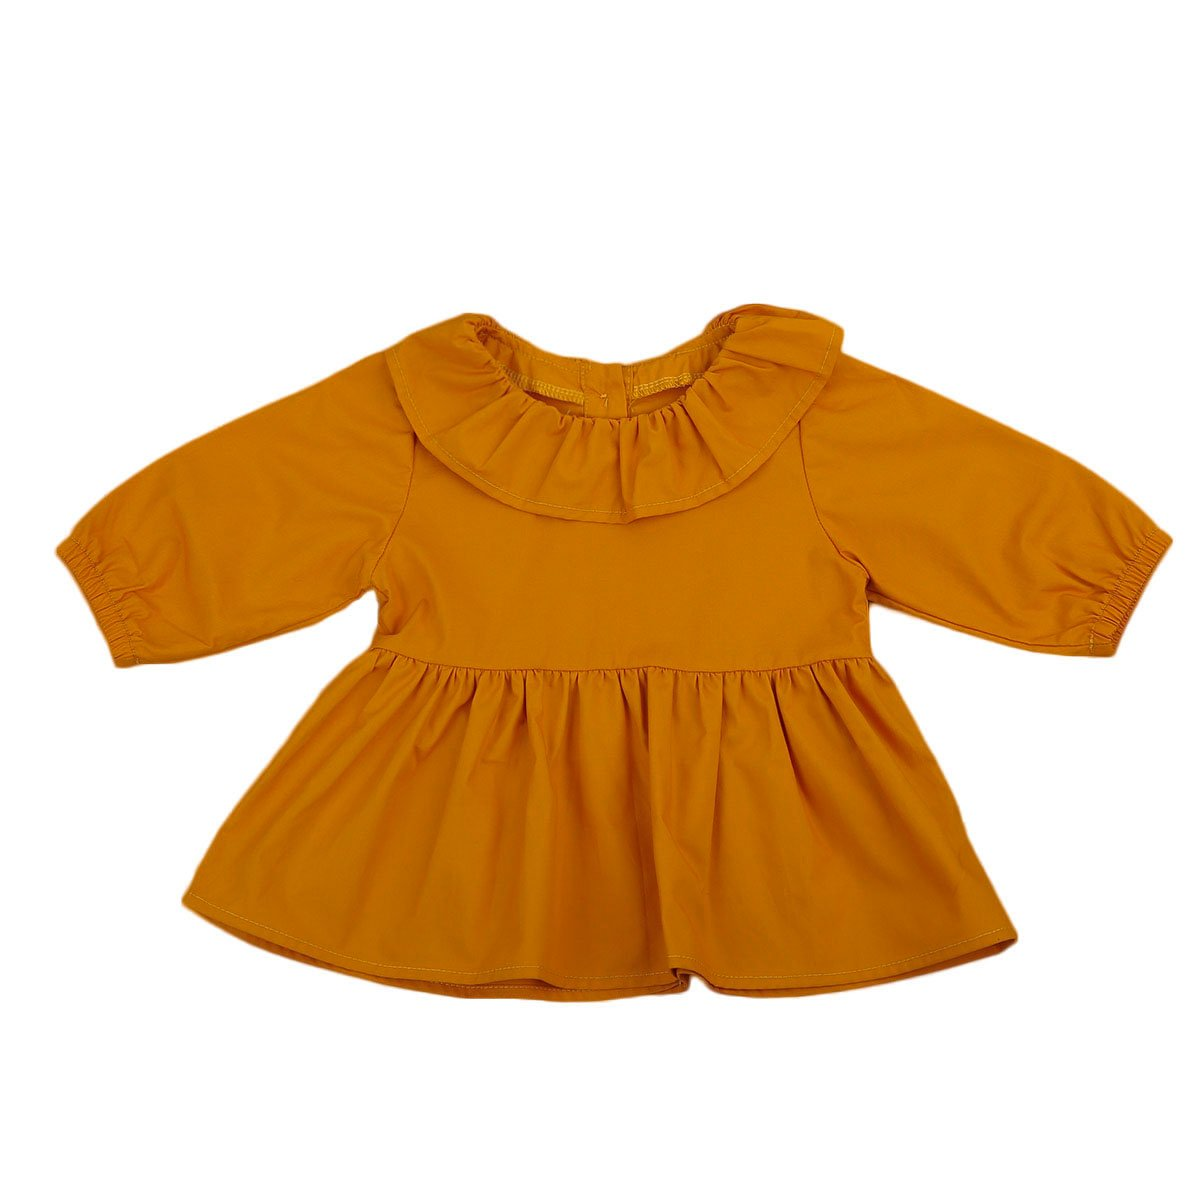 Cute Baby Blouses Lotus Round Neck Girls Button Tutu Dress Shirt Outfit Clothes